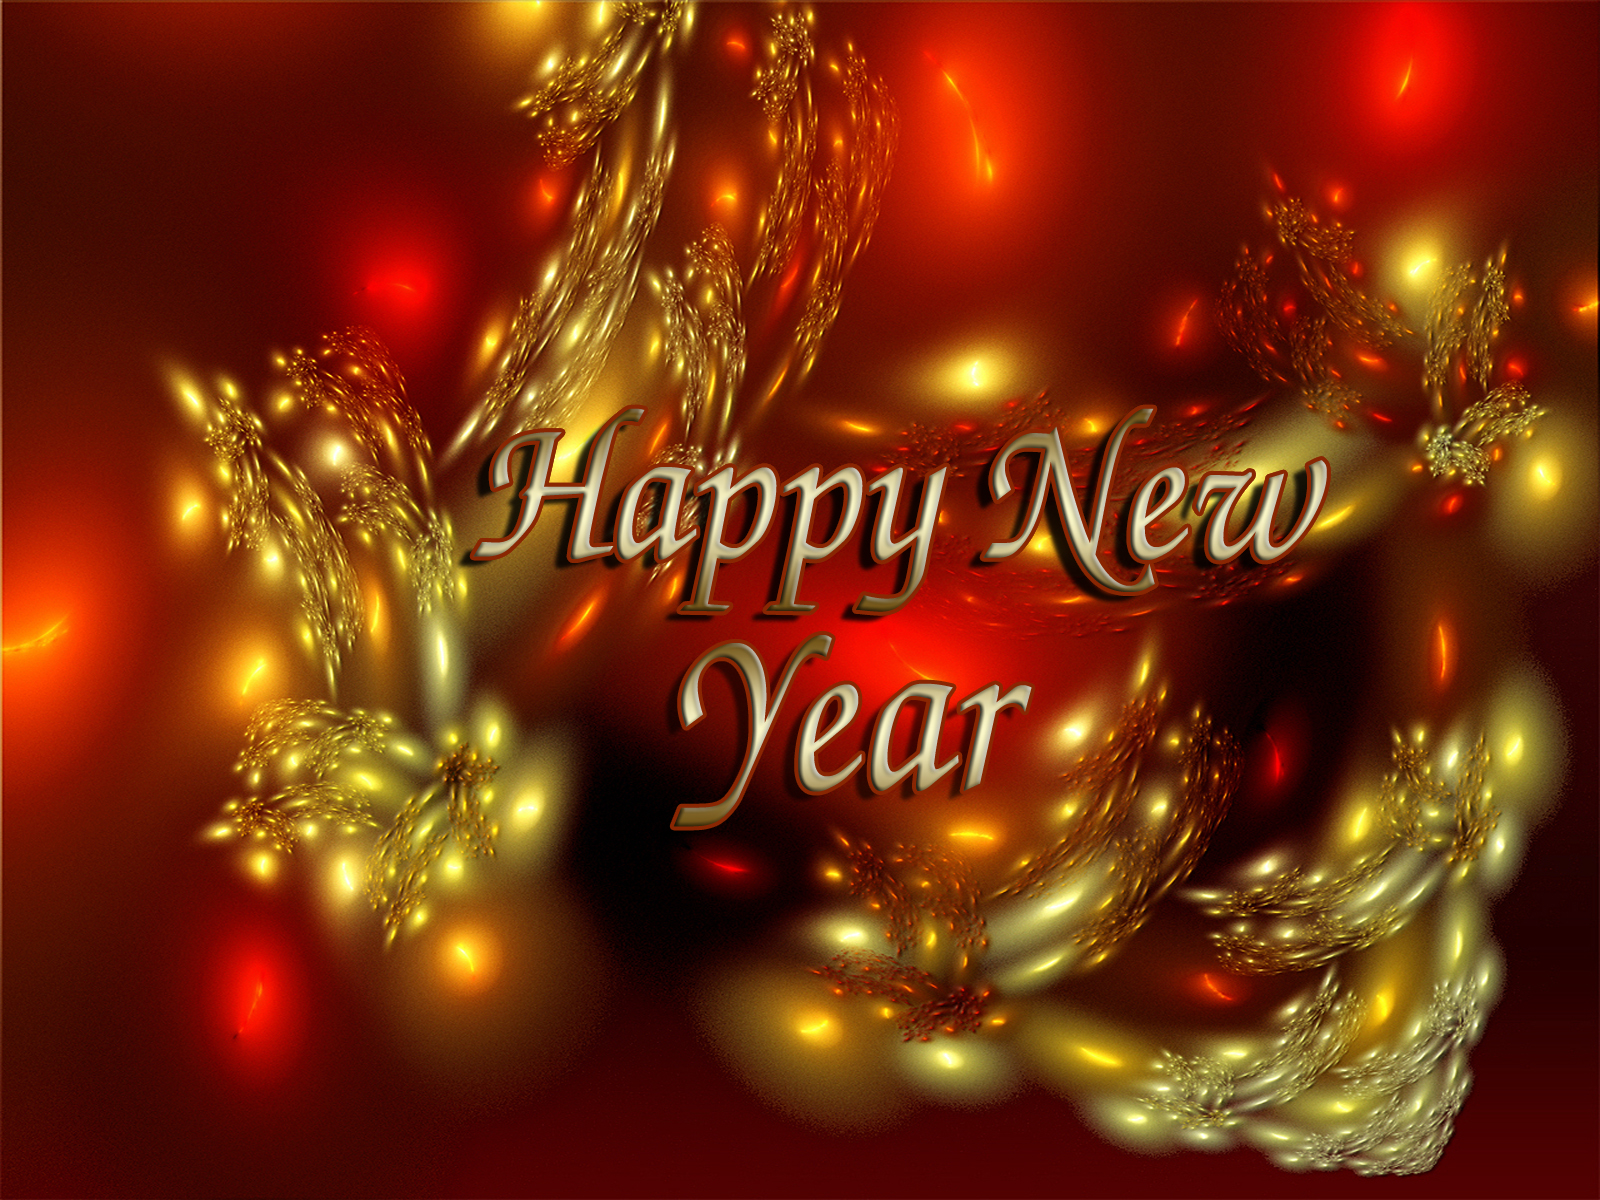 Happy new year wallpapers is a great thing to in new year wallpapers 1600x1200